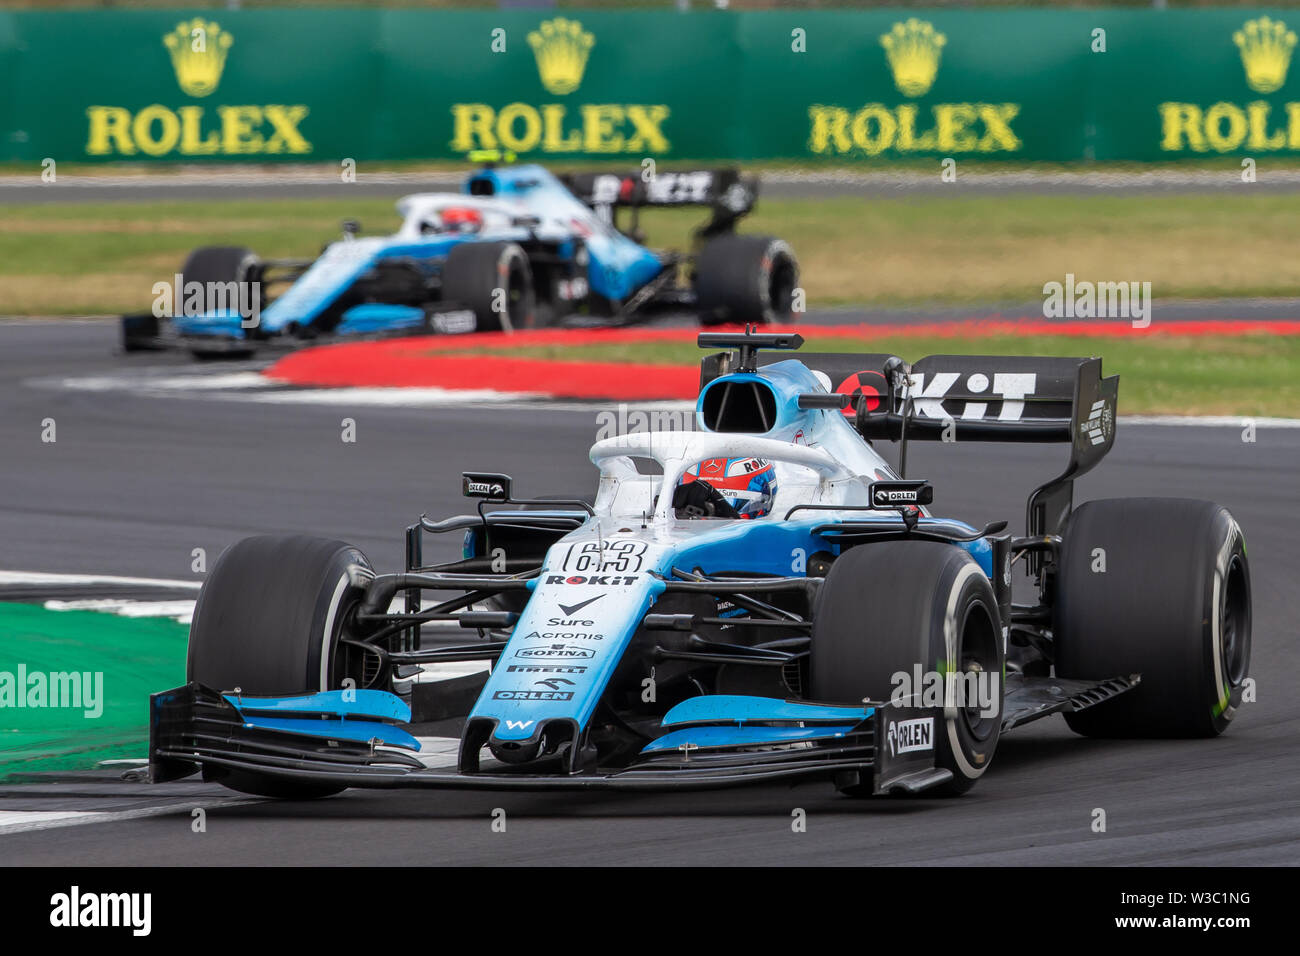 Silverstone, UK. 14th July 2019. FIA F1 Grand Prix of Britain, Race Day; ROKiT Williams Racing team mates, George Russell and Robert Kubica Credit: Action Plus Sports Images/Alamy Live News Stock Photo